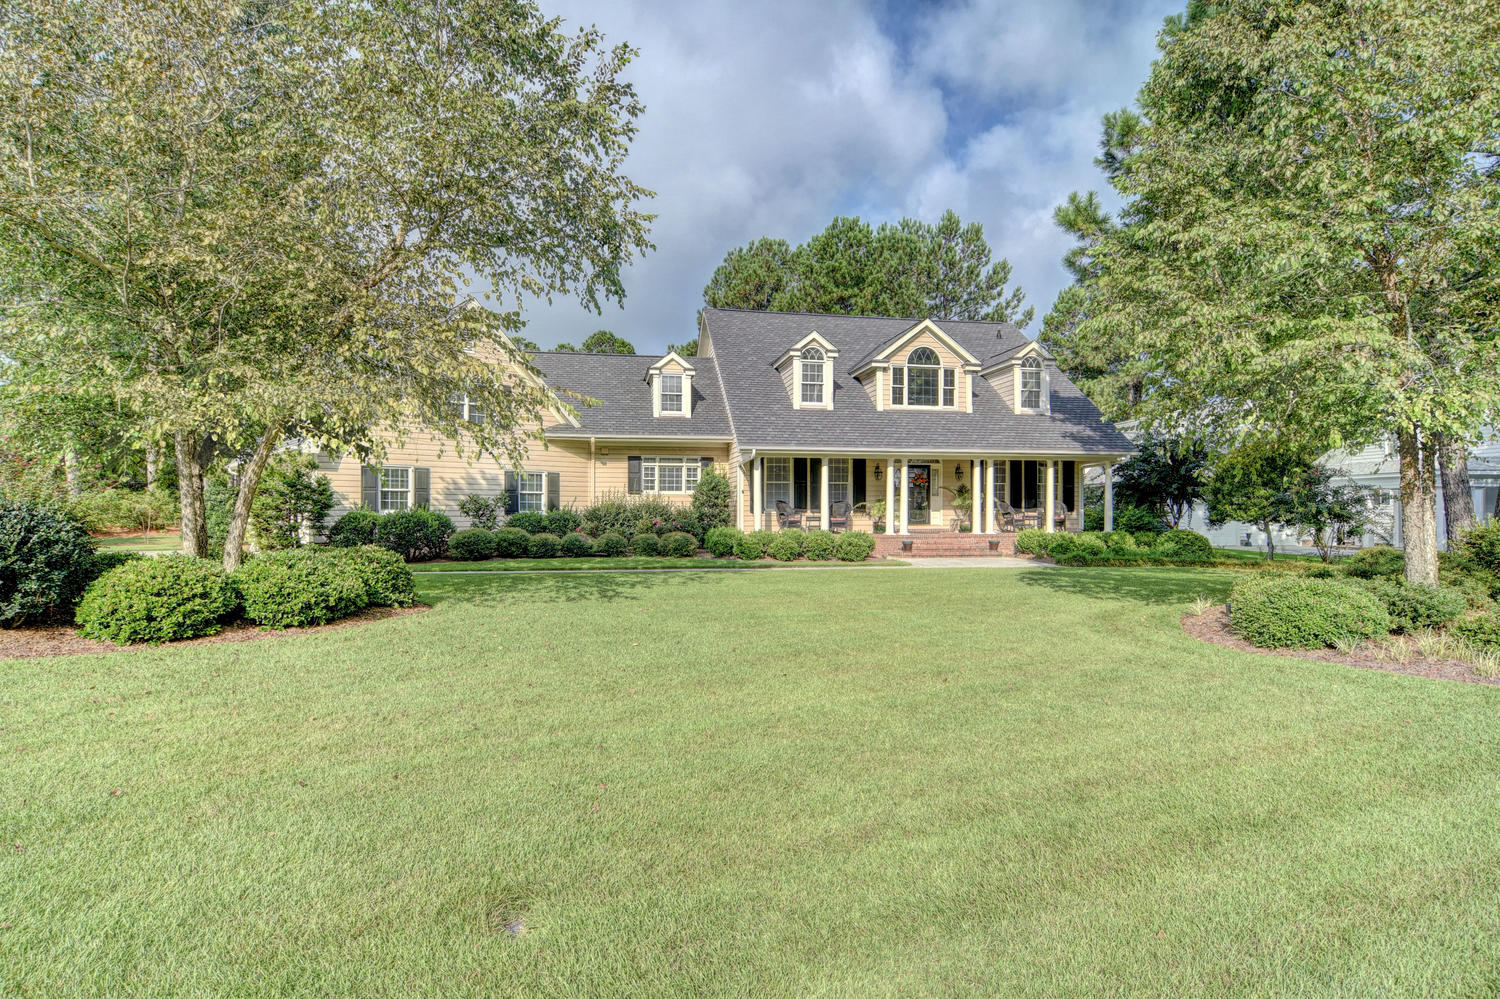 Wilmington Homes for Sale cover image